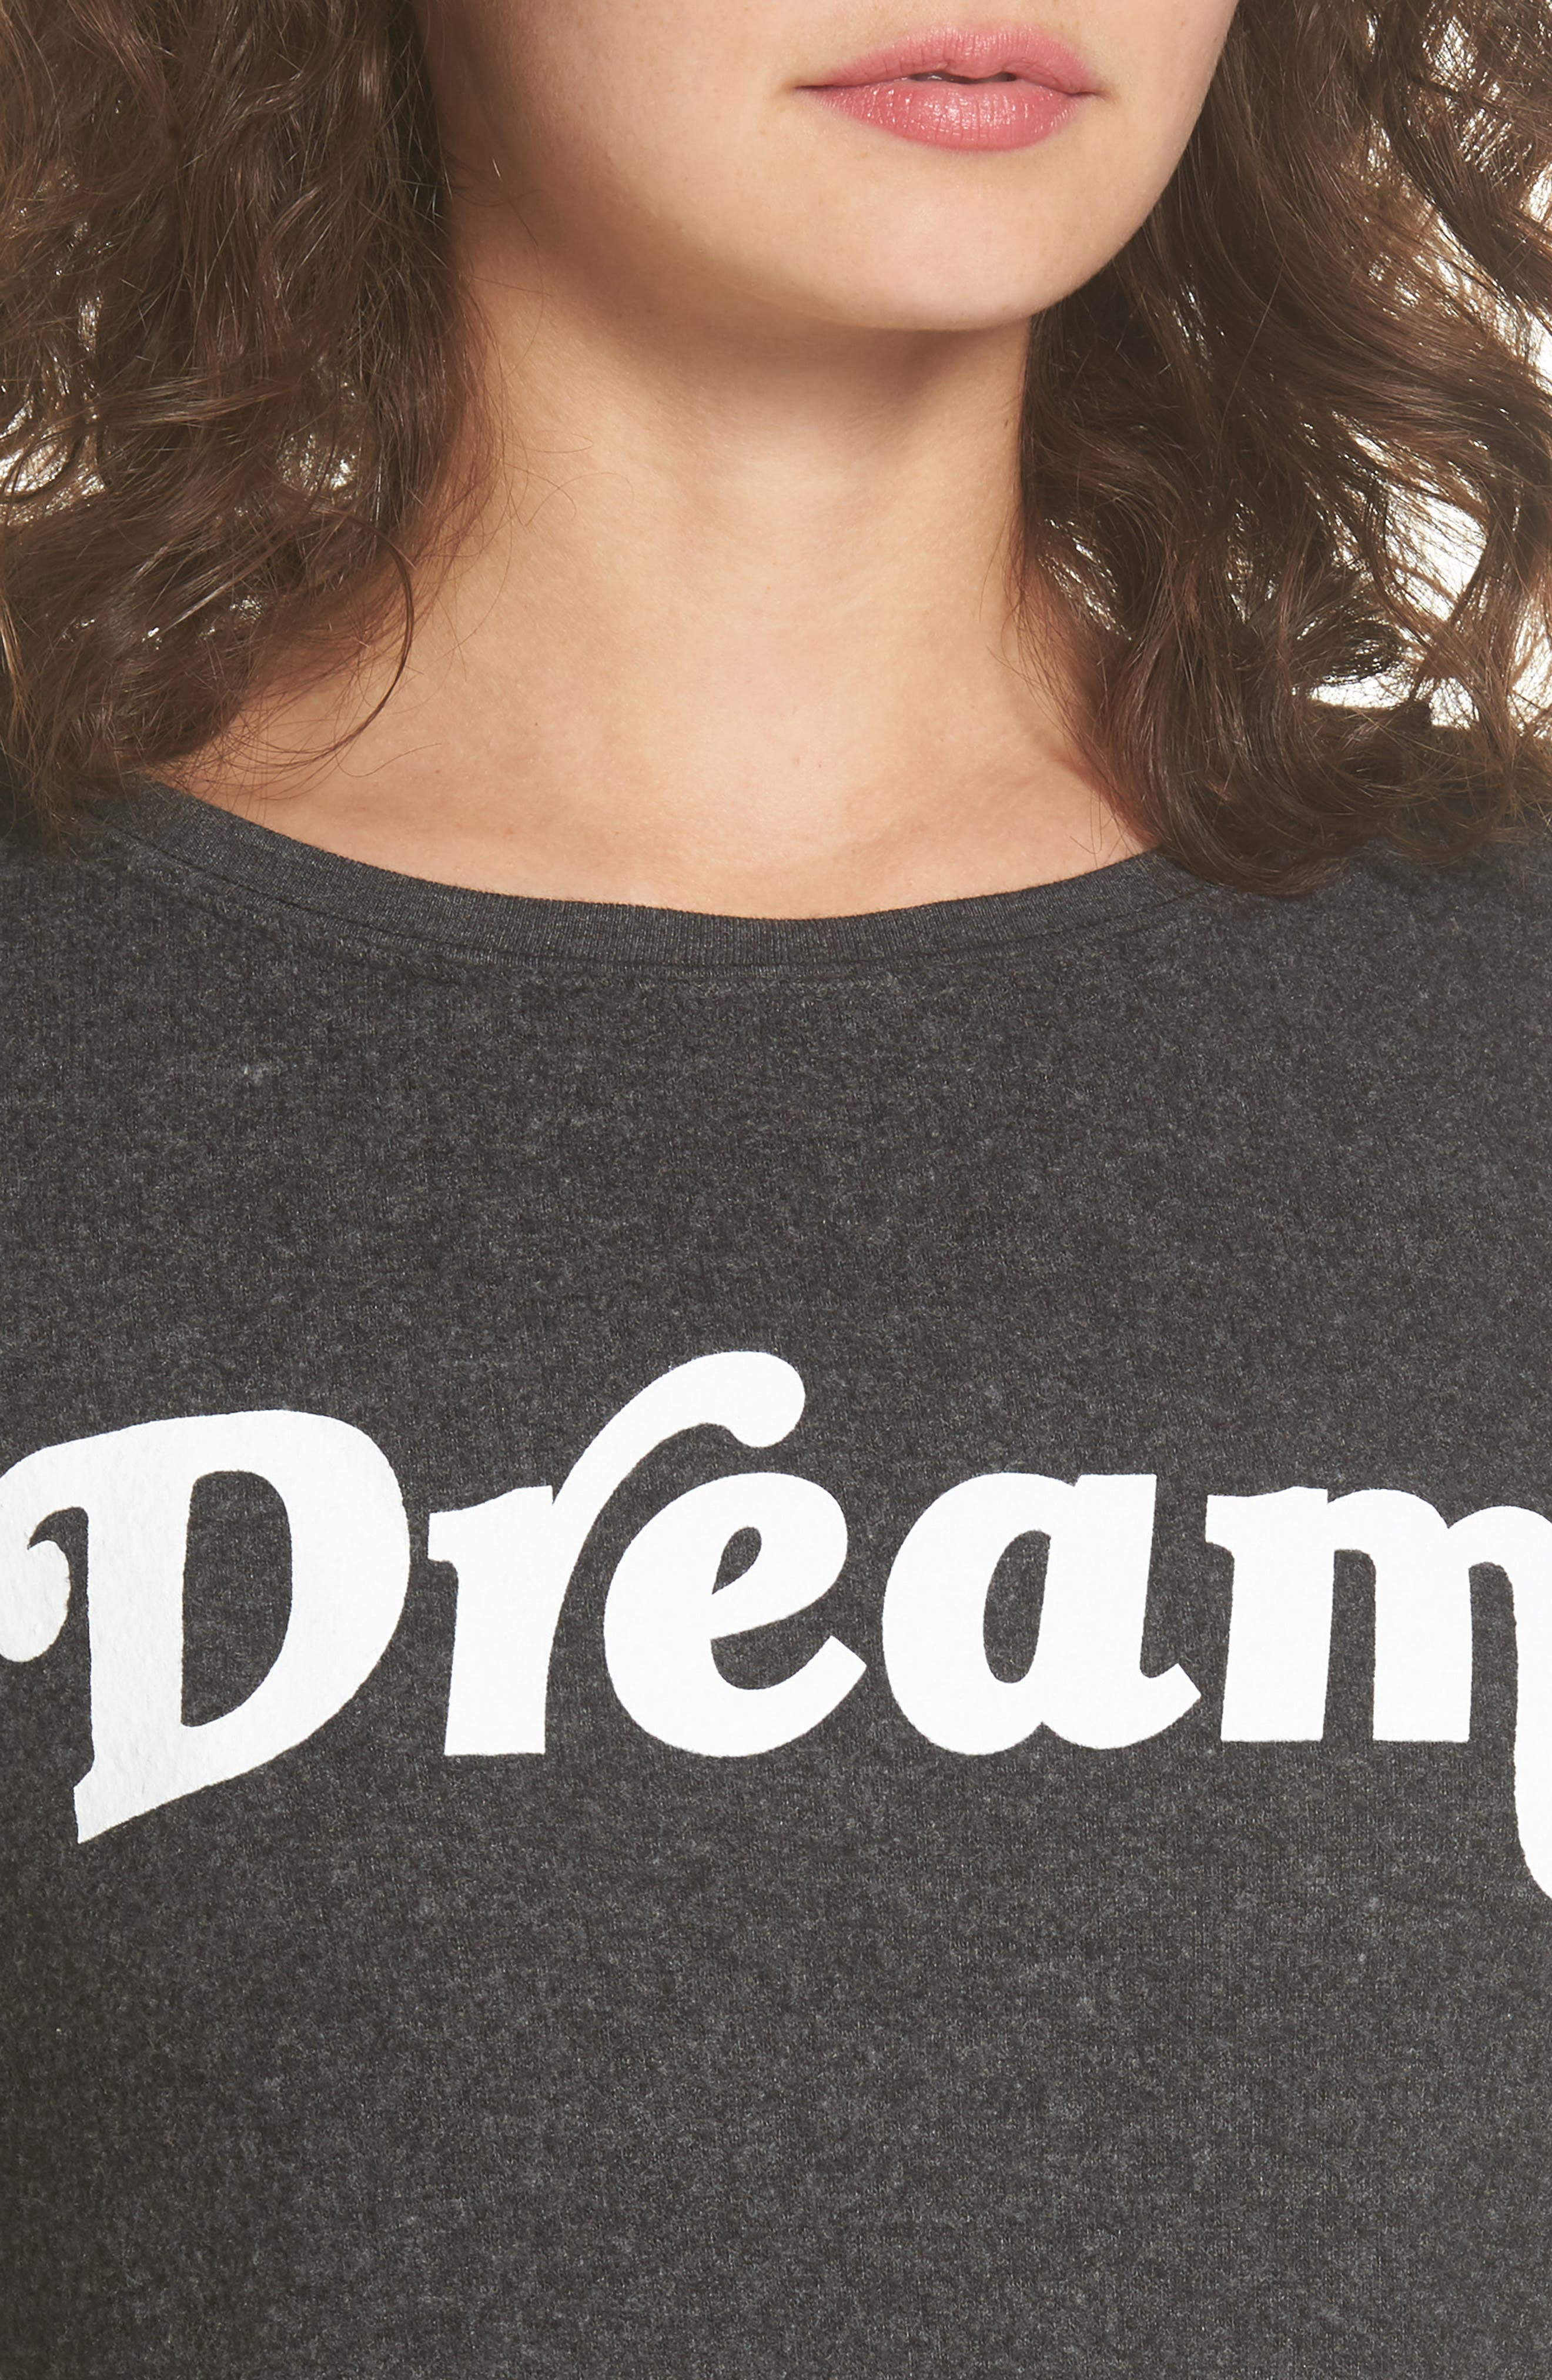 Dream Sweatshirt,                             Alternate thumbnail 4, color,                             001